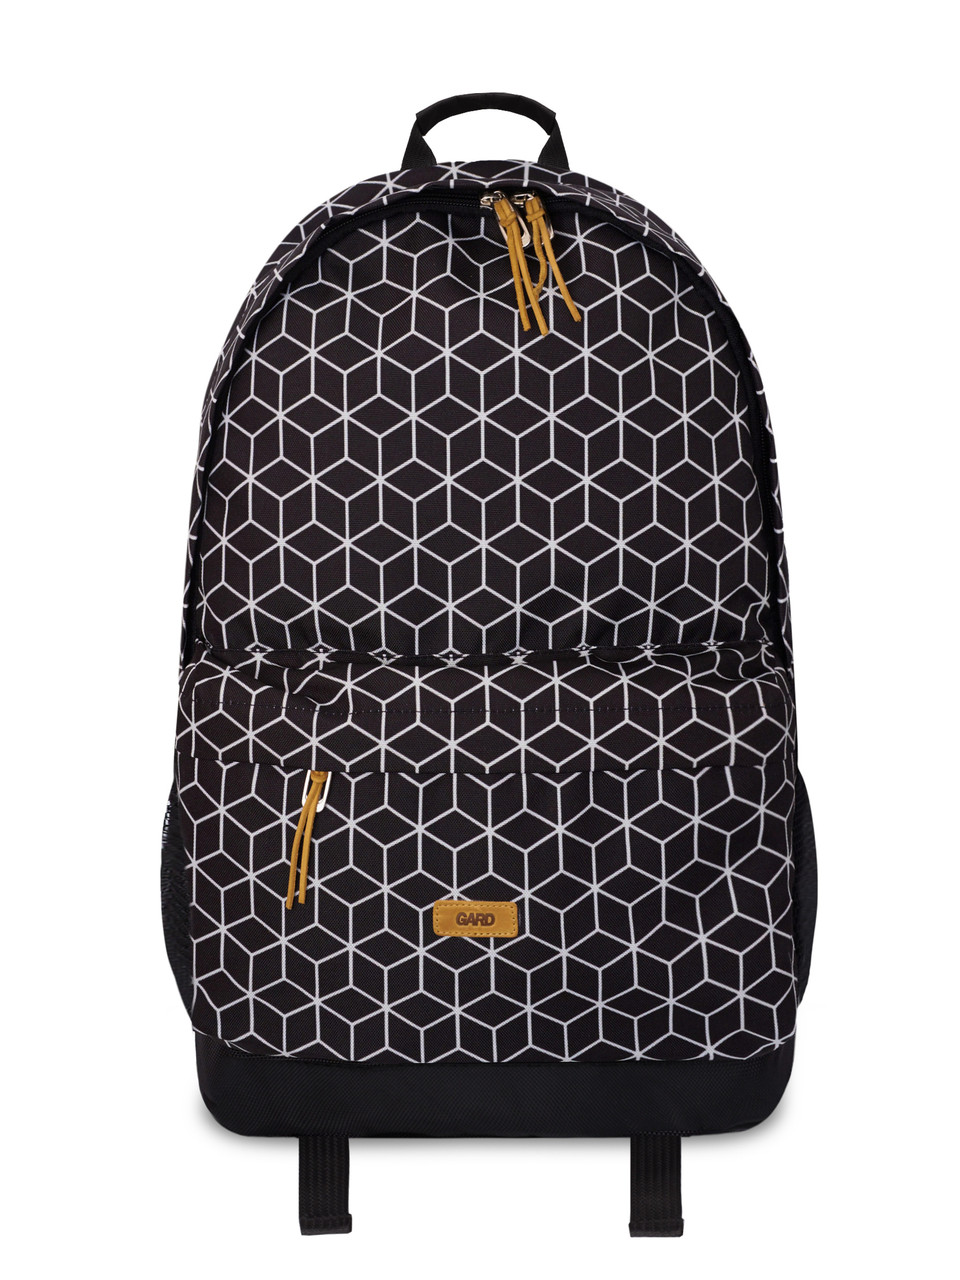 Рюкзак GARD BACKPACK-2 | geometrik print 1/18 45х32х14 см Черный (BP2-0005/GRD)